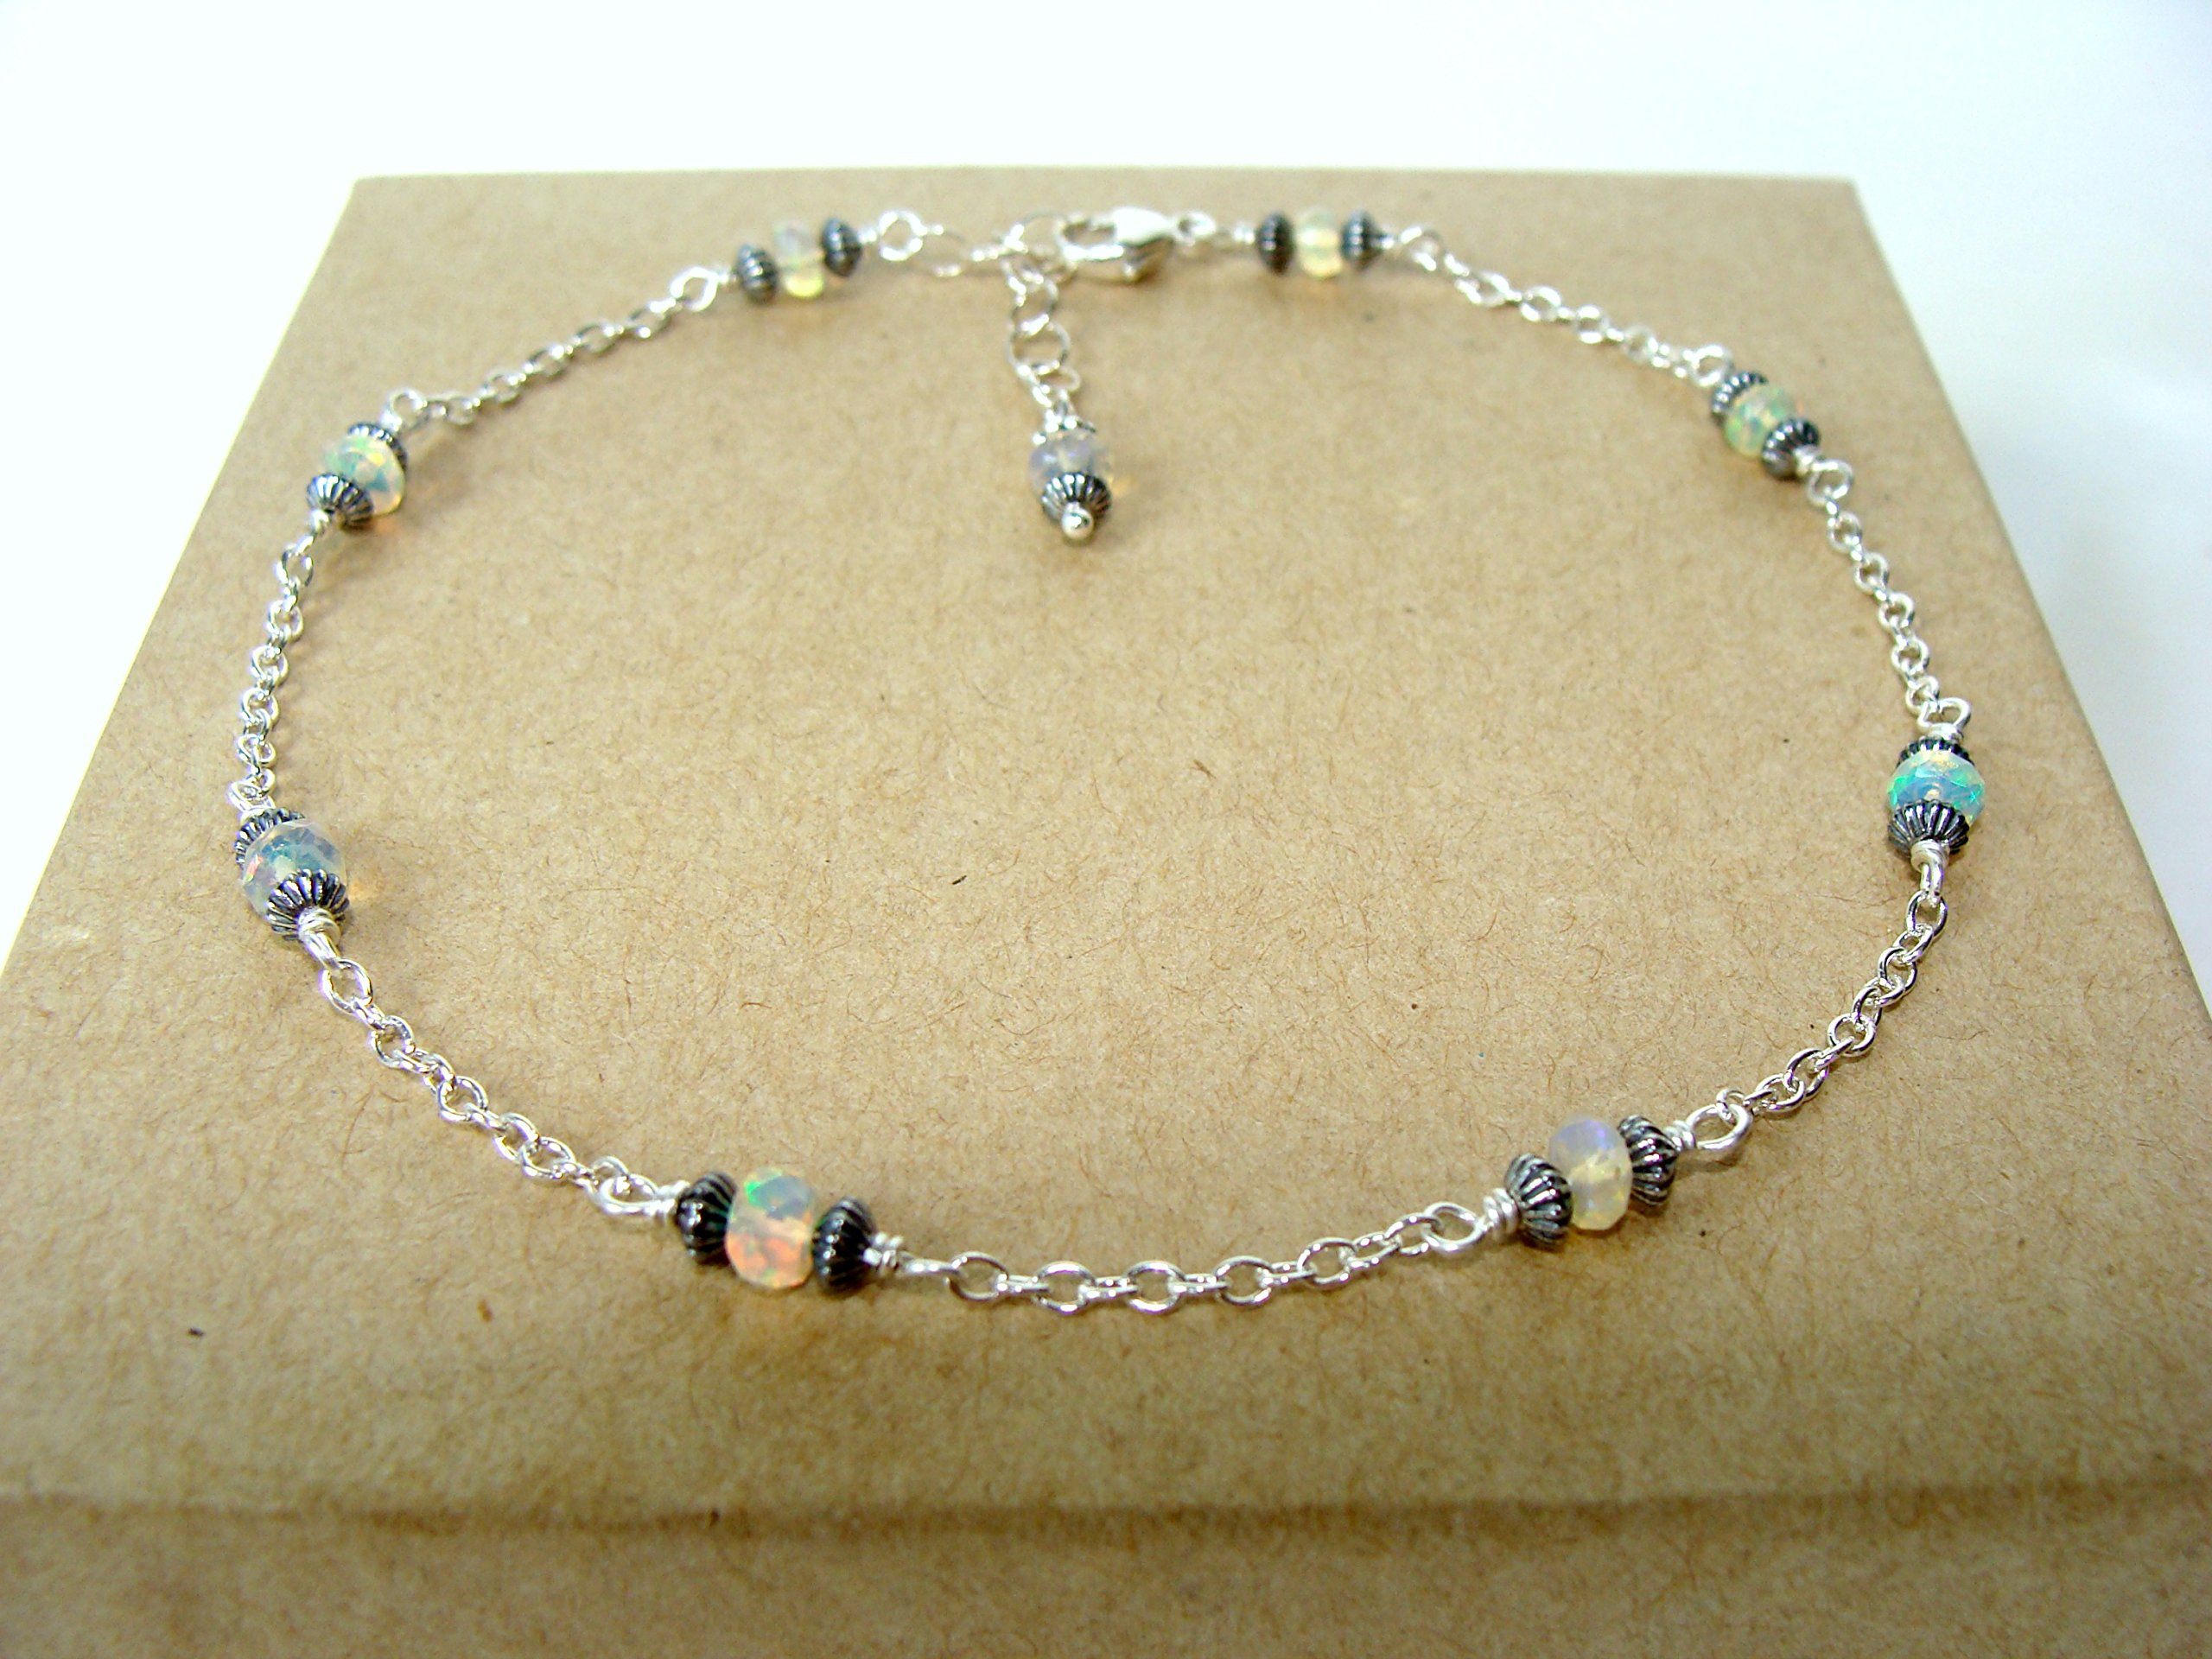 Sterling silver opal anklet, handmade ankle bracelet with Welo opals, adjustable length 9-10 inches, Let Loose Jewelry